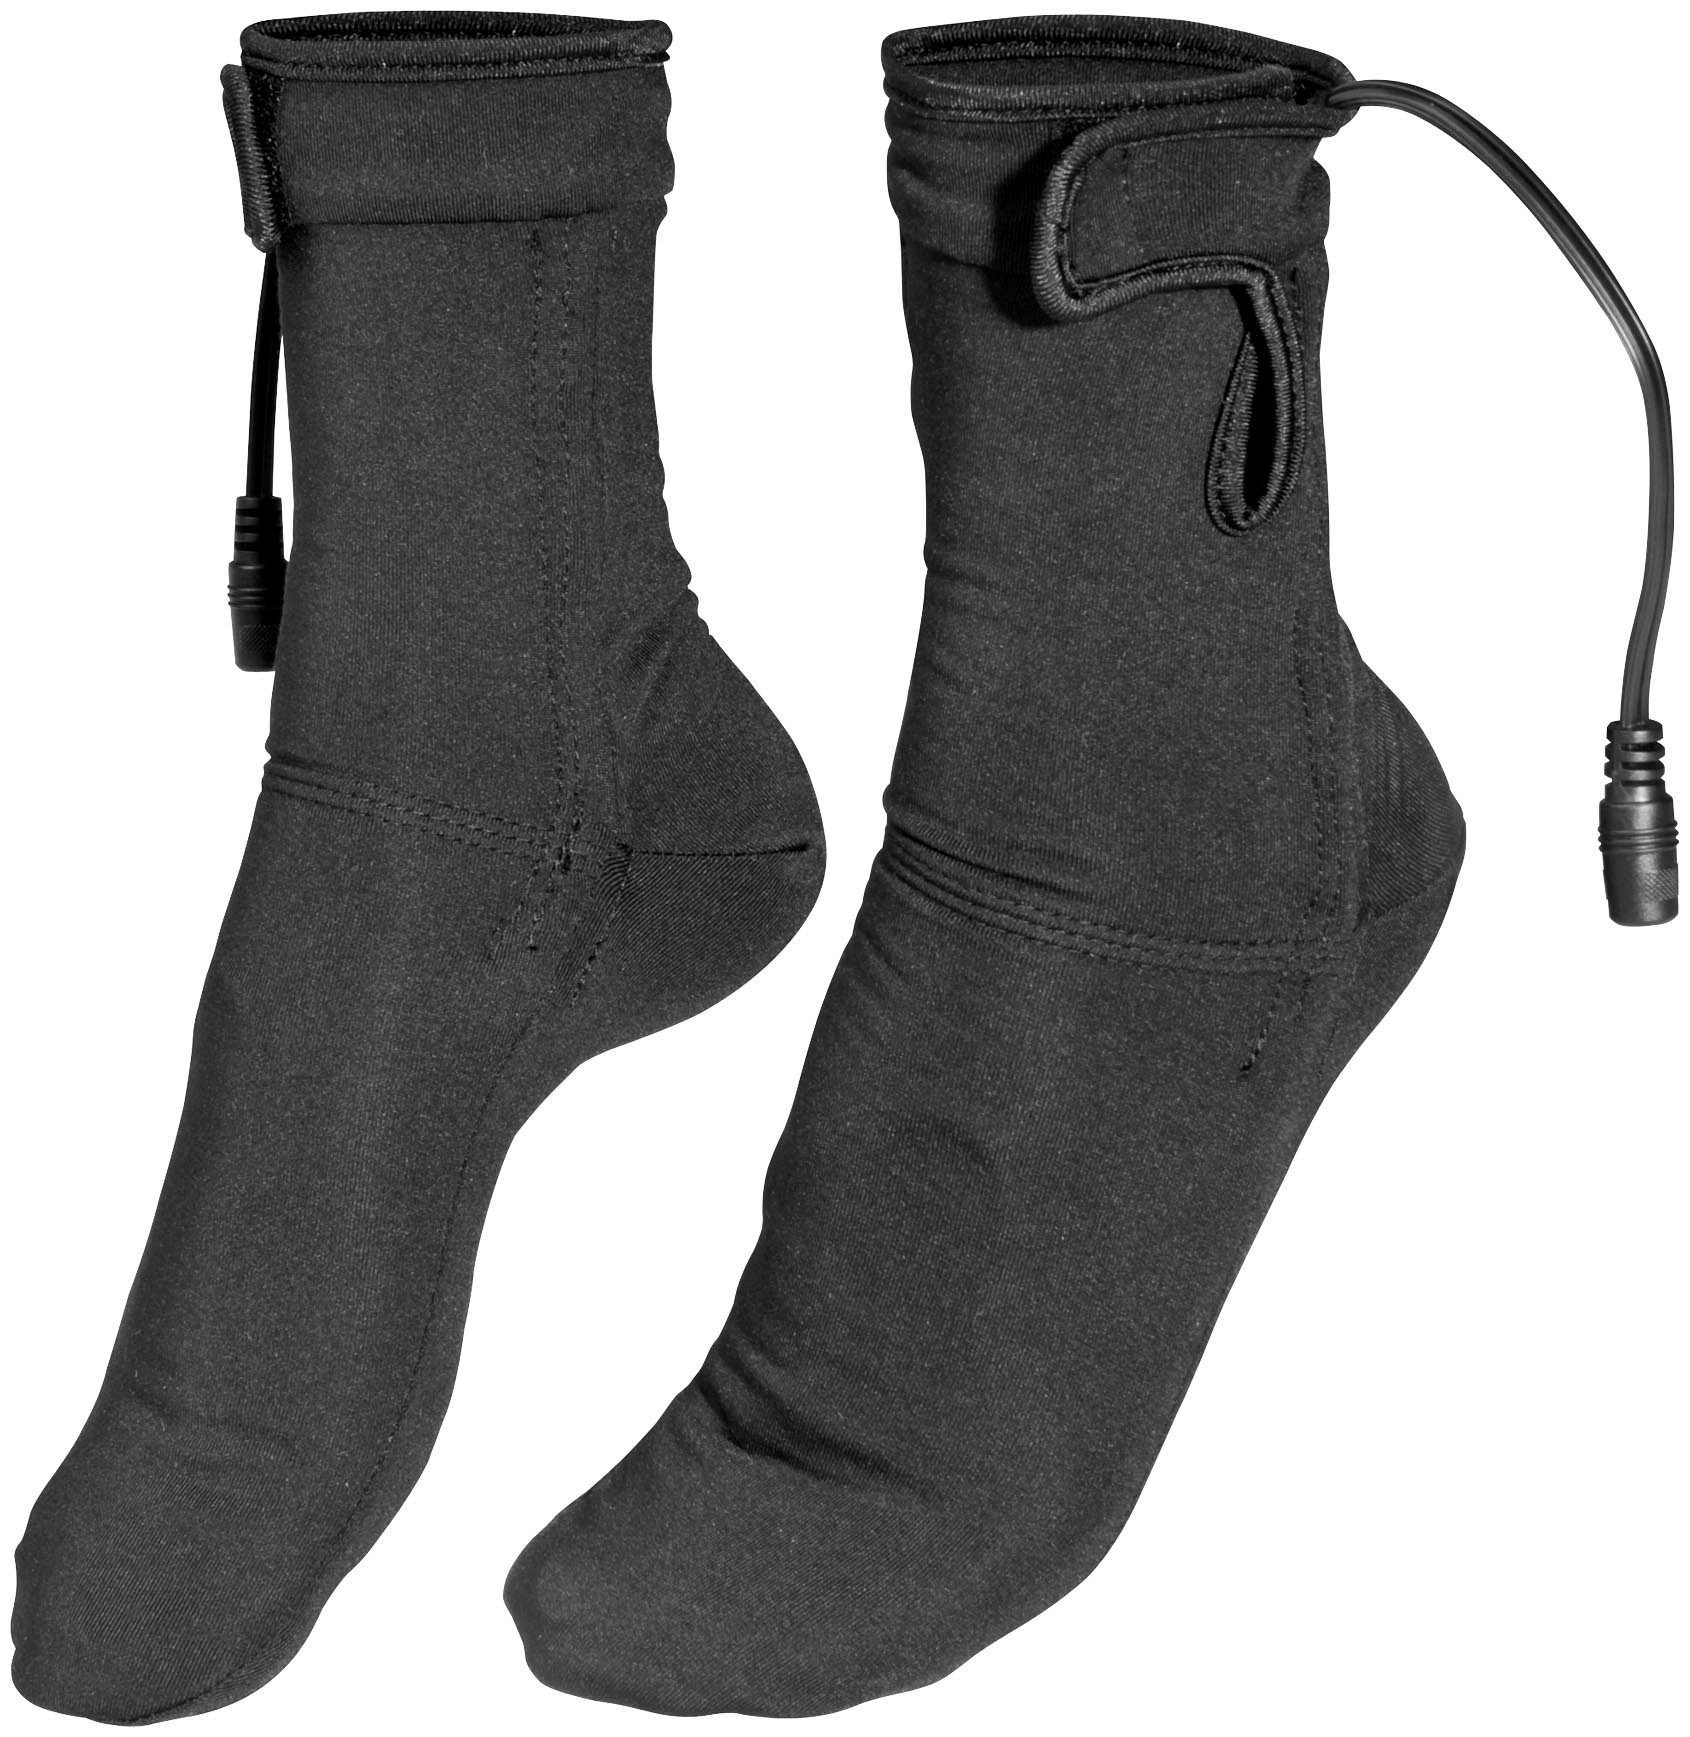 First Gear Heated Socks